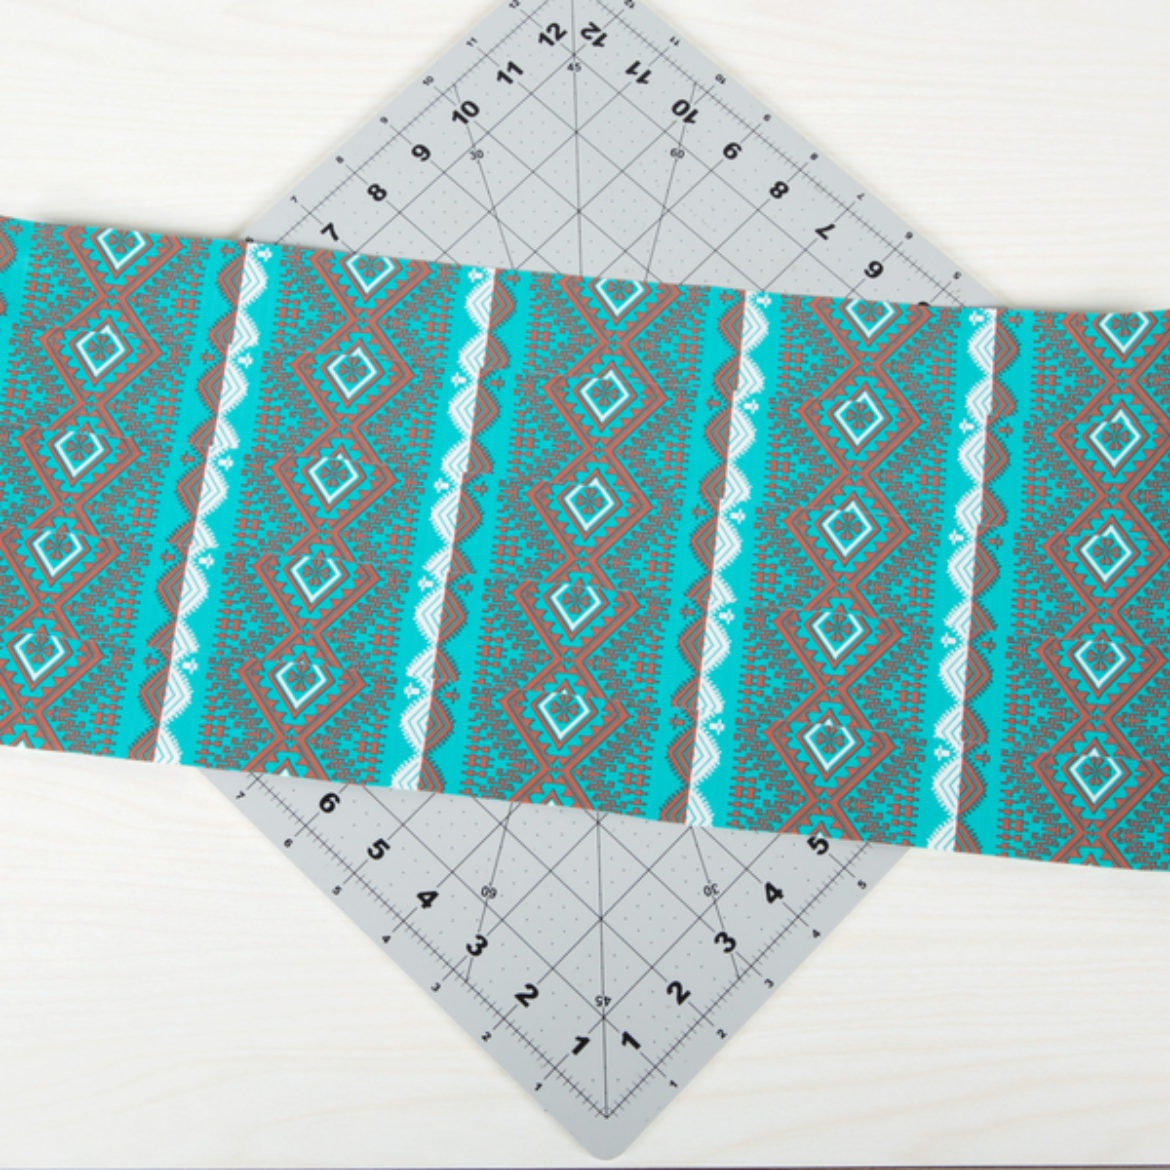 Double sided Duck Tape fabric made by overlapping strips of Duck Tape into a sheet and placing sticky side to sticky side with an identical sheet